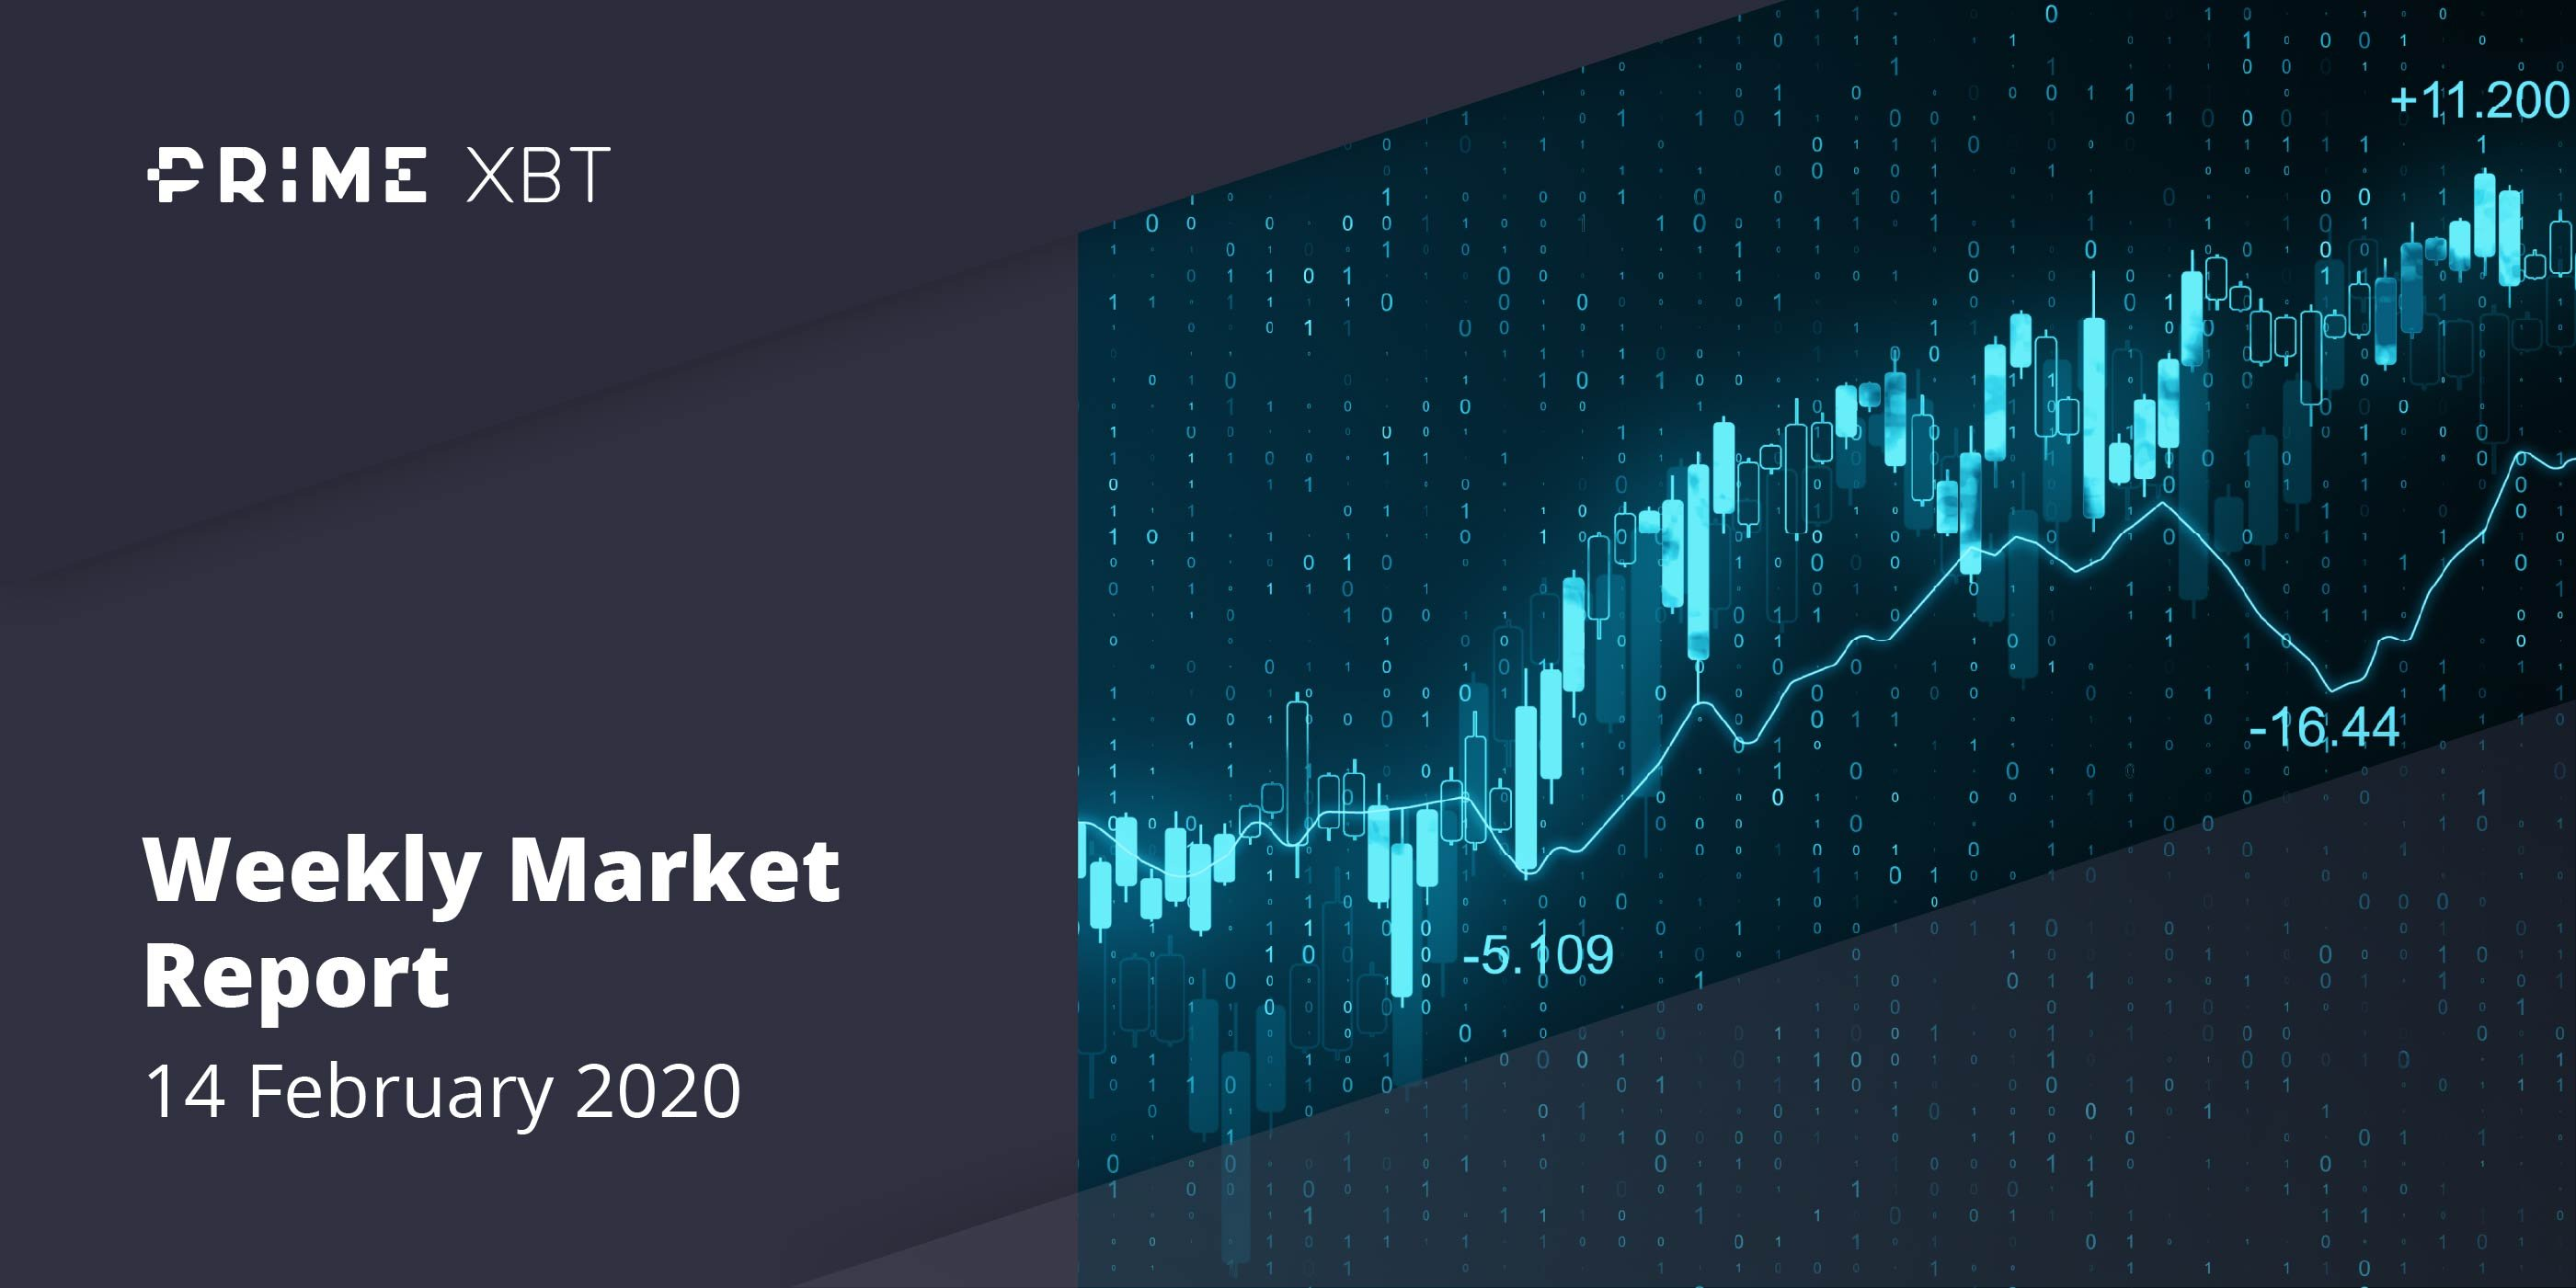 14.02.20 - Crypto Market Report: New Bitcoin All-Time High By September, Altcoins Continue To Moon